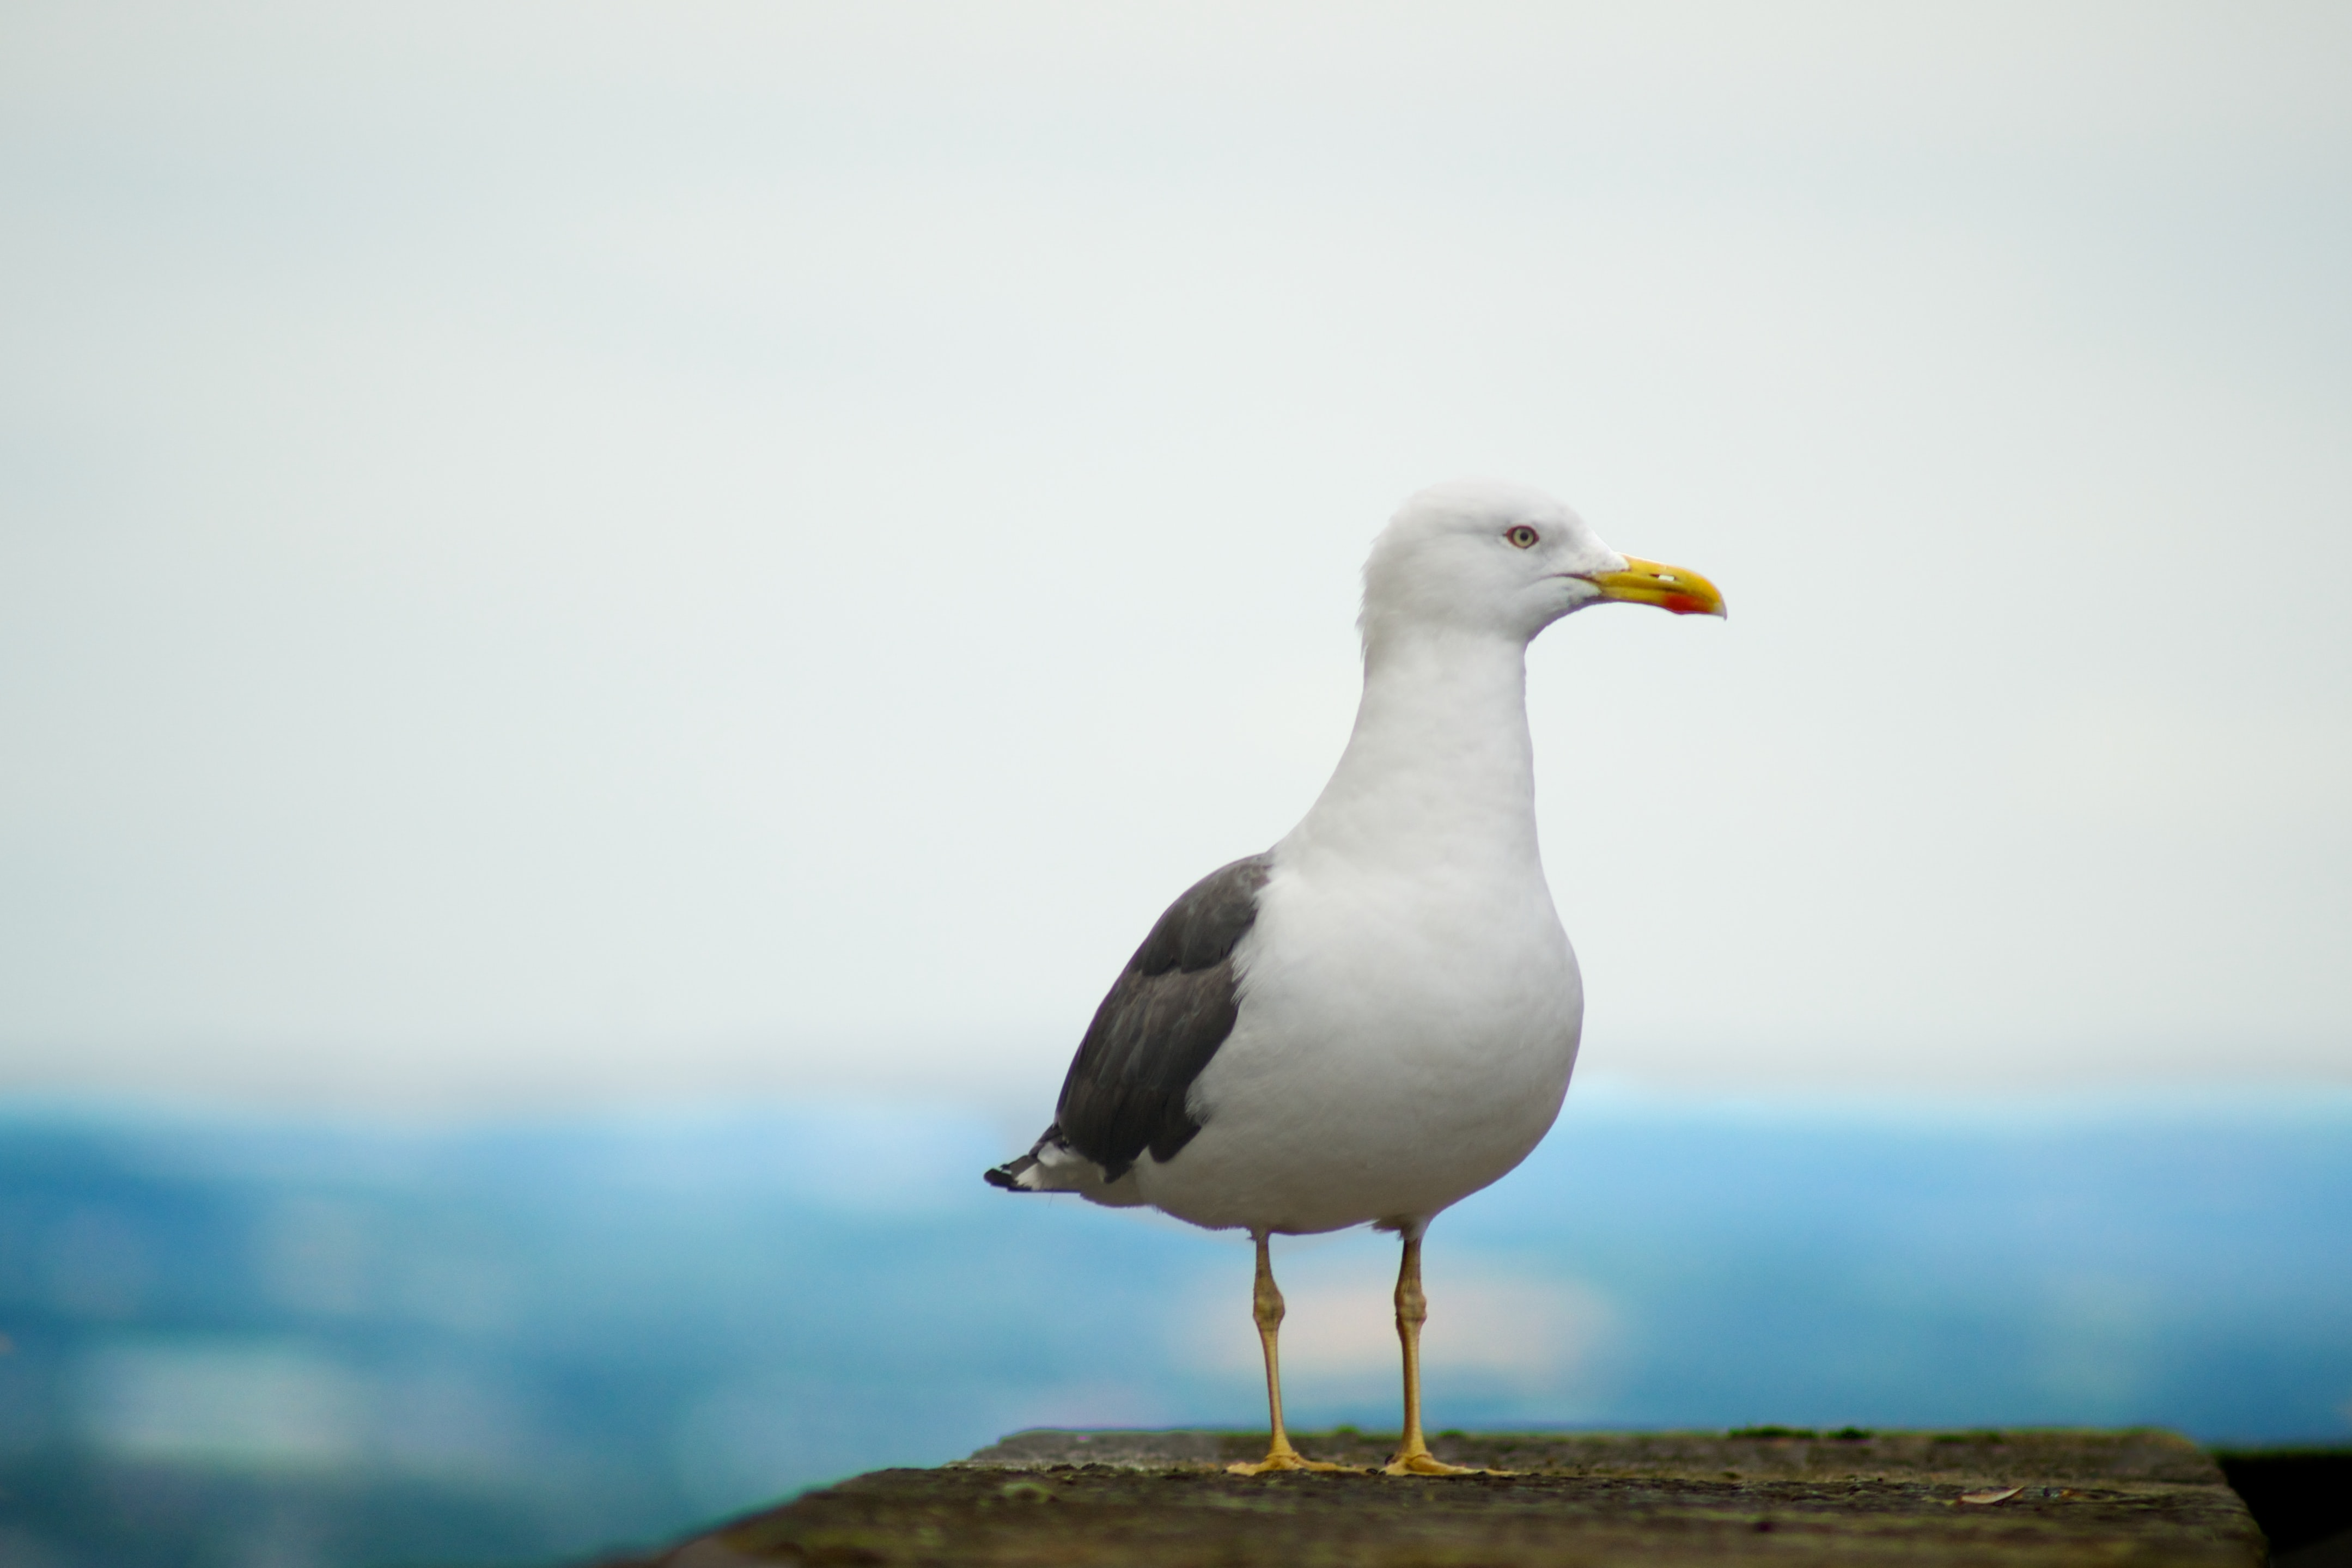 A close-up of a seagull against a blurry background